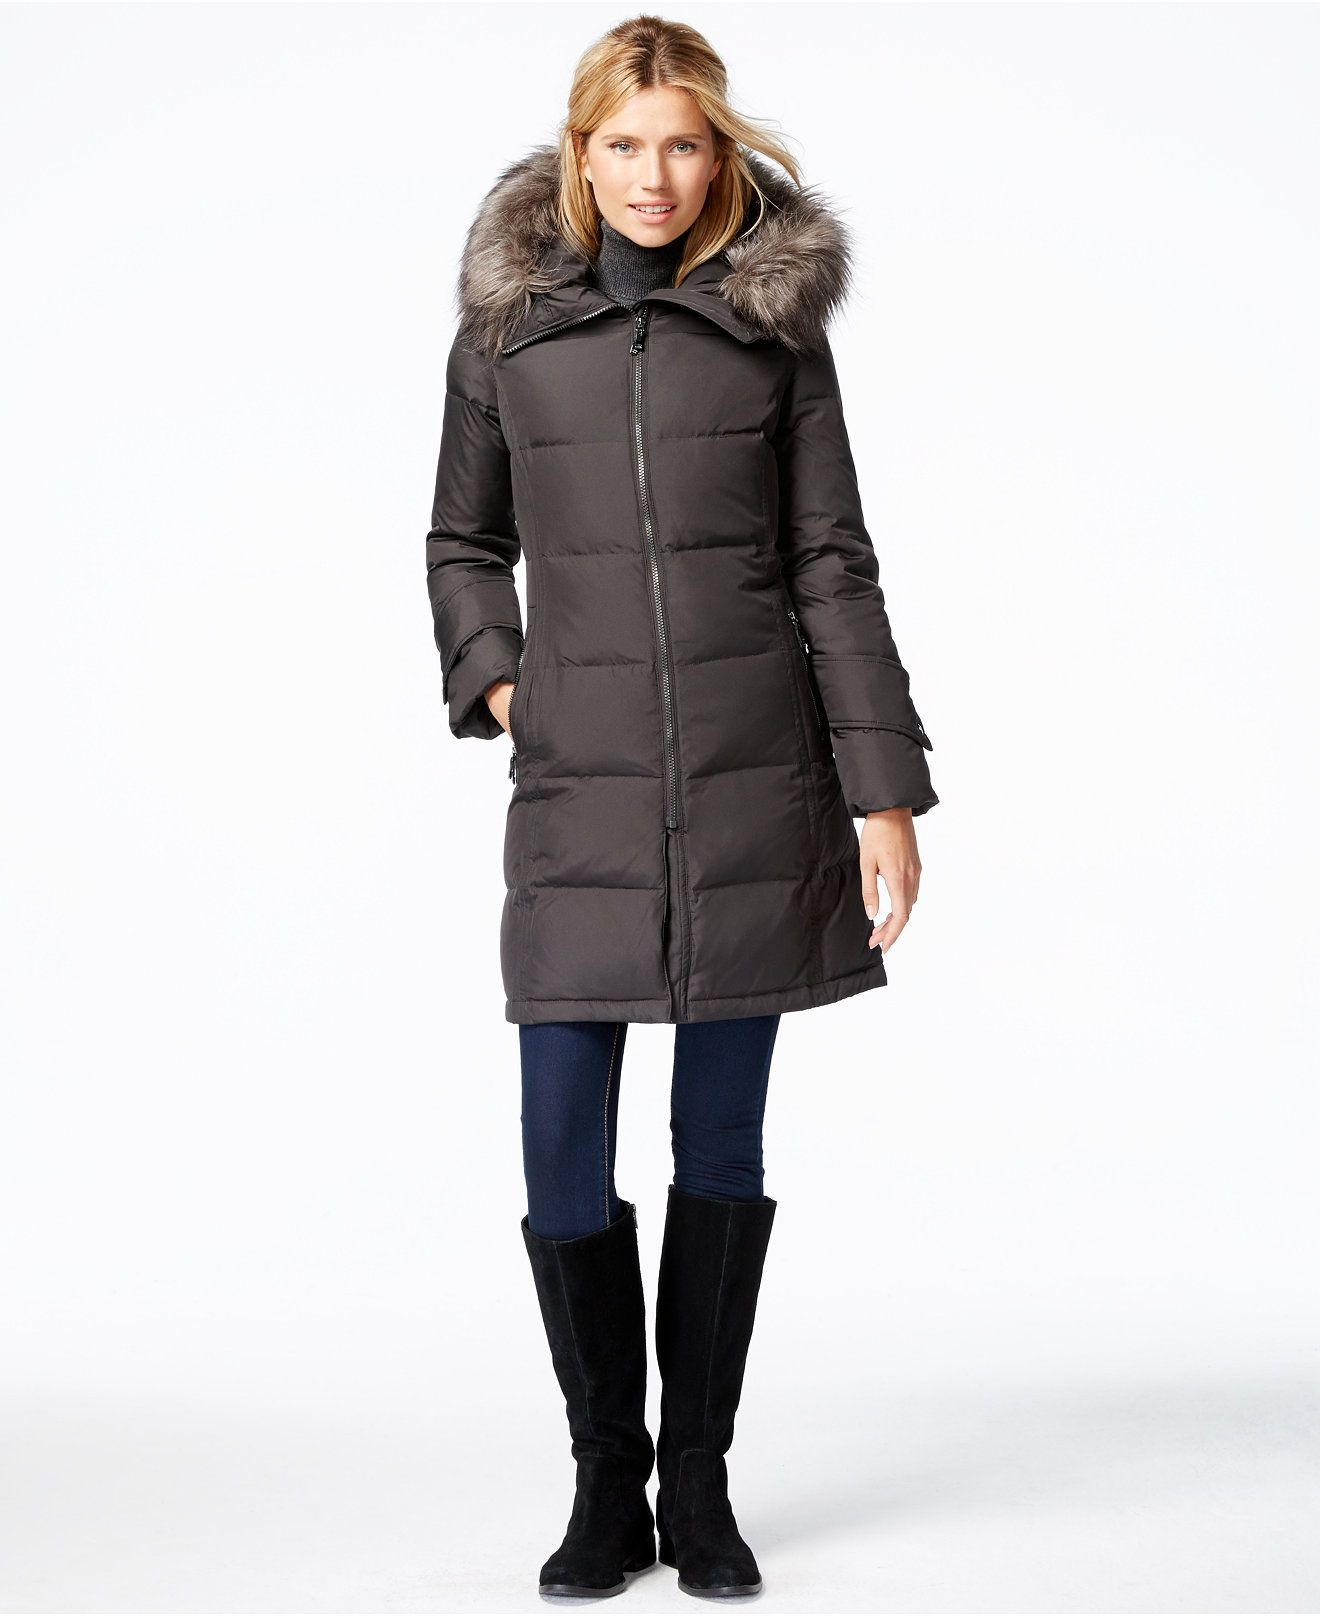 Calvin Klein Faux-Fur-Trim Puffer Down Jacket - Coats - Women ...